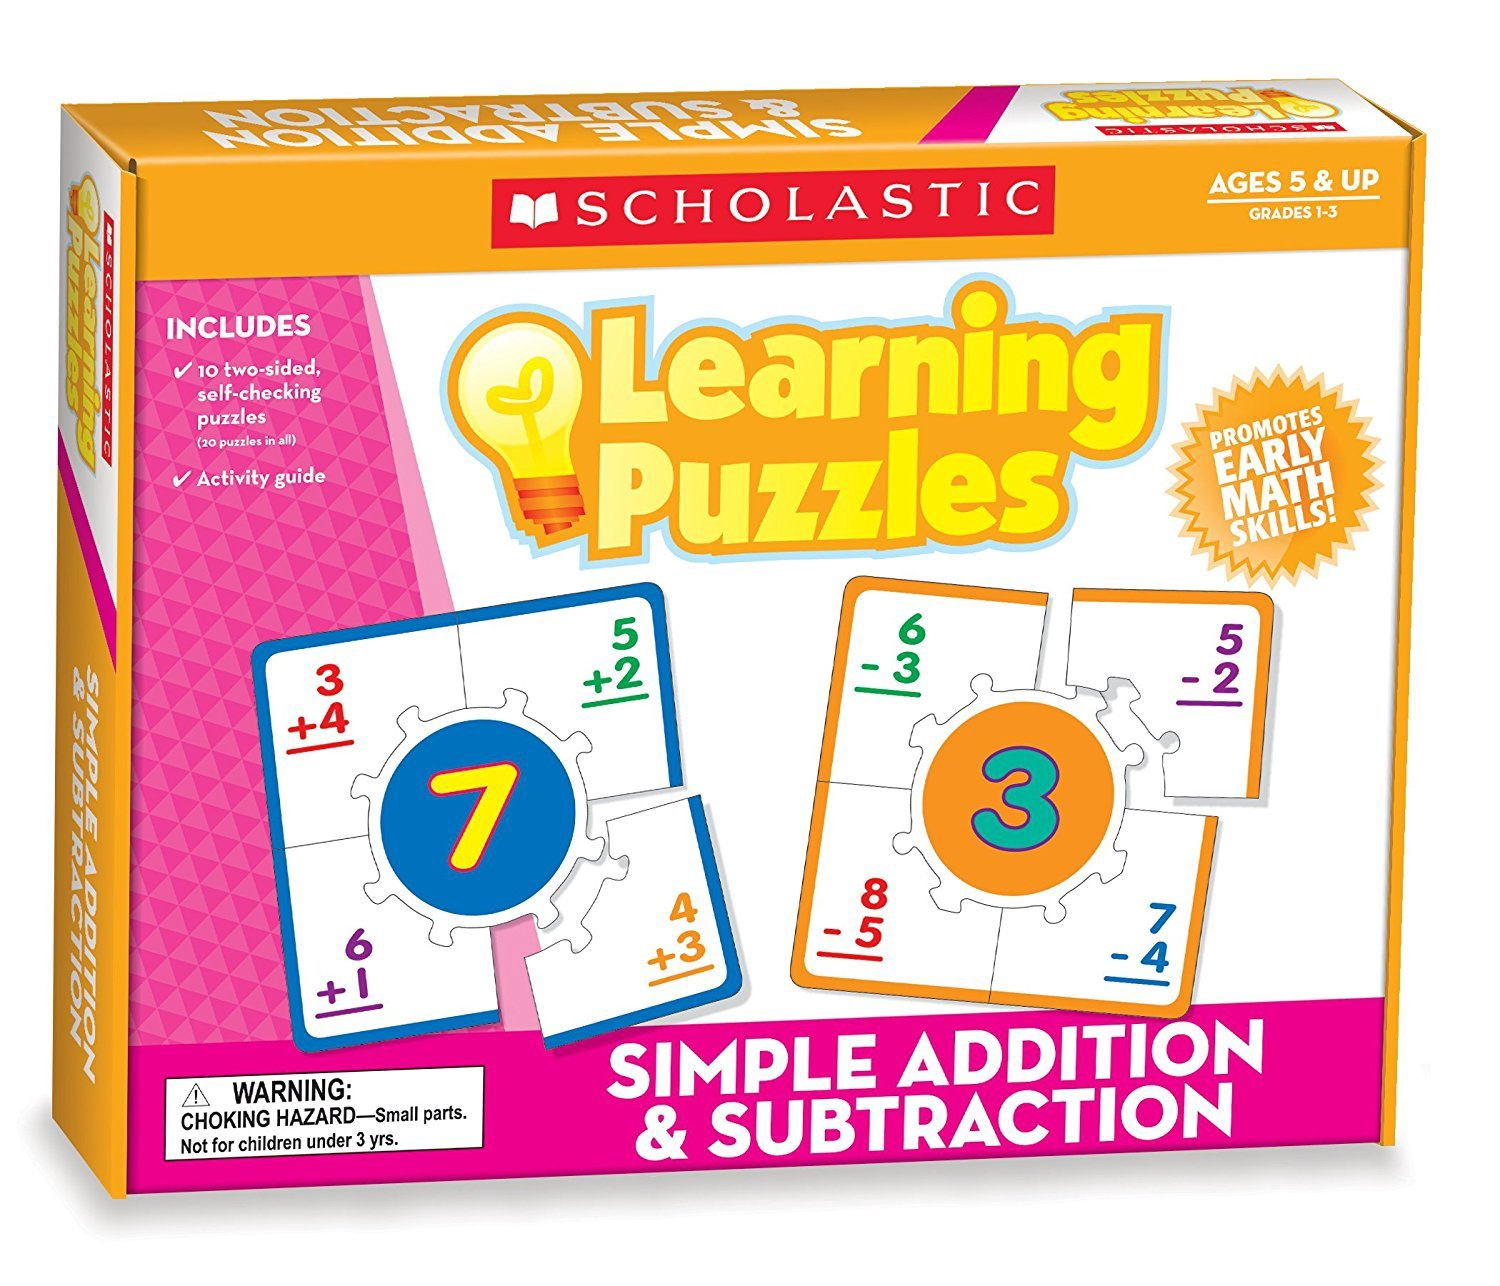 X SC 0545302319 SIMPLE ADD / SUBTRACT PUZZLE